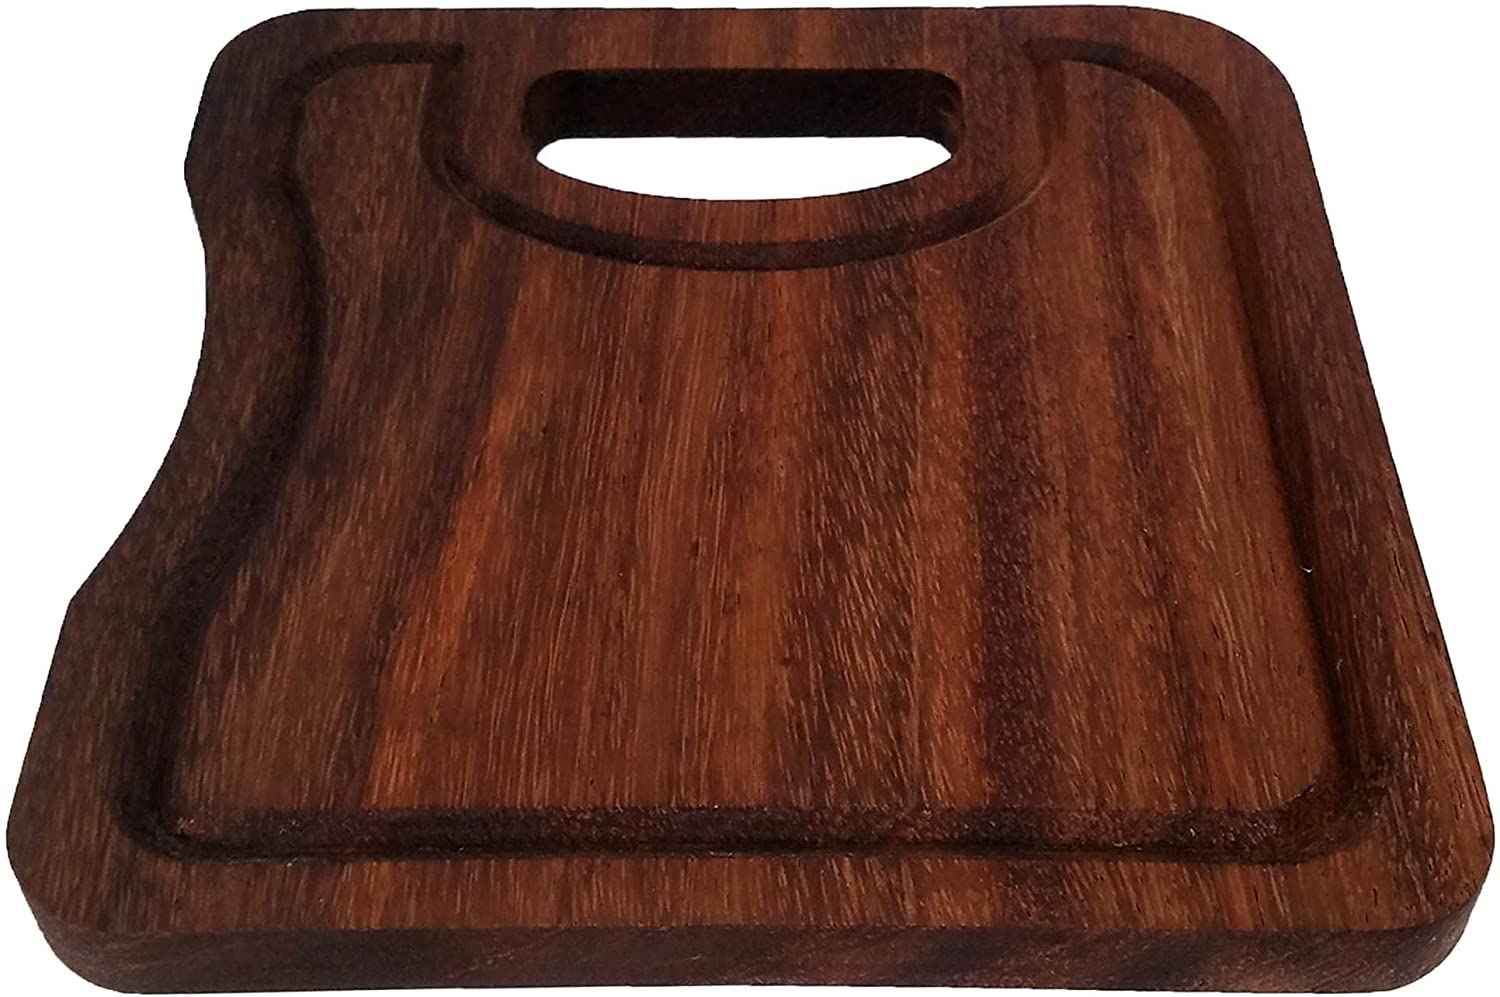 PAROTA WOOD PRODUCTS / Small Parota Wood Serving/Cutting Board with Juice Groove